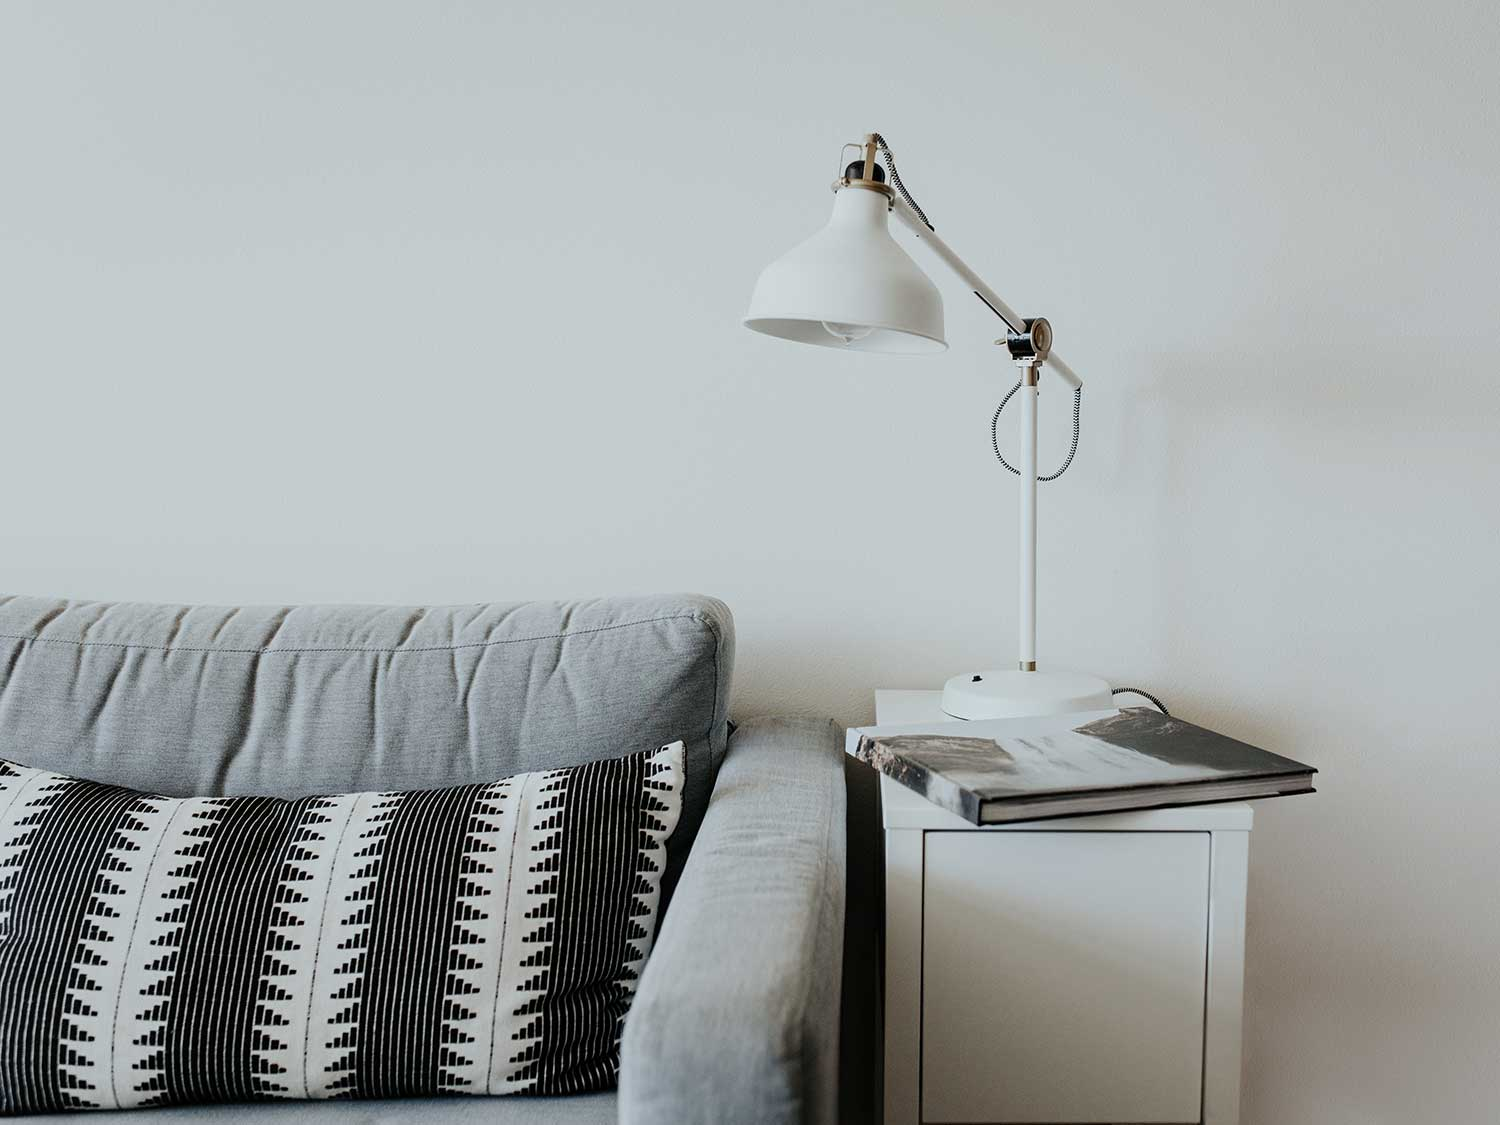 Living room side table with lamp and couch